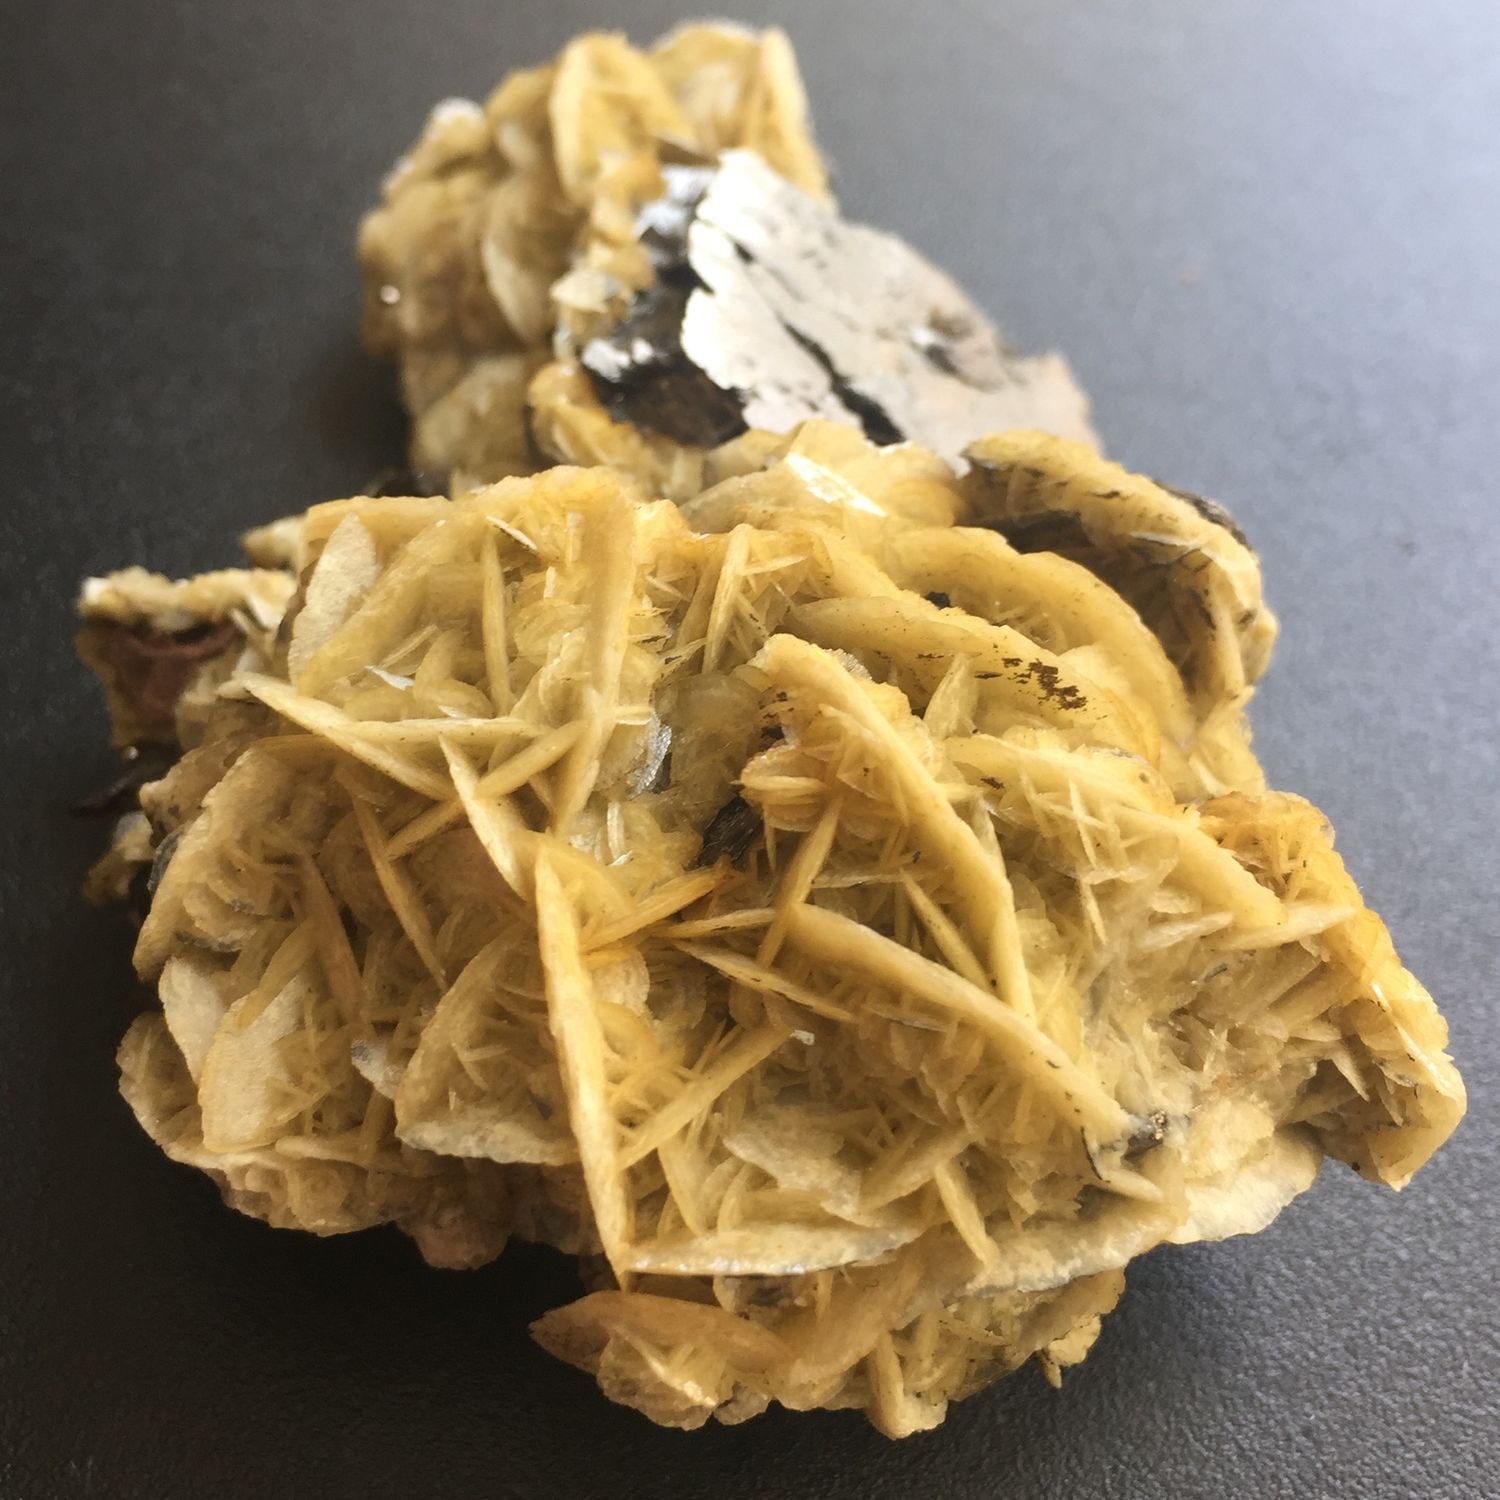 Calcite rose (Druze) in symbiosis with pyrite and chalcopyrite, Druse, Krasnodar,  Фото №1